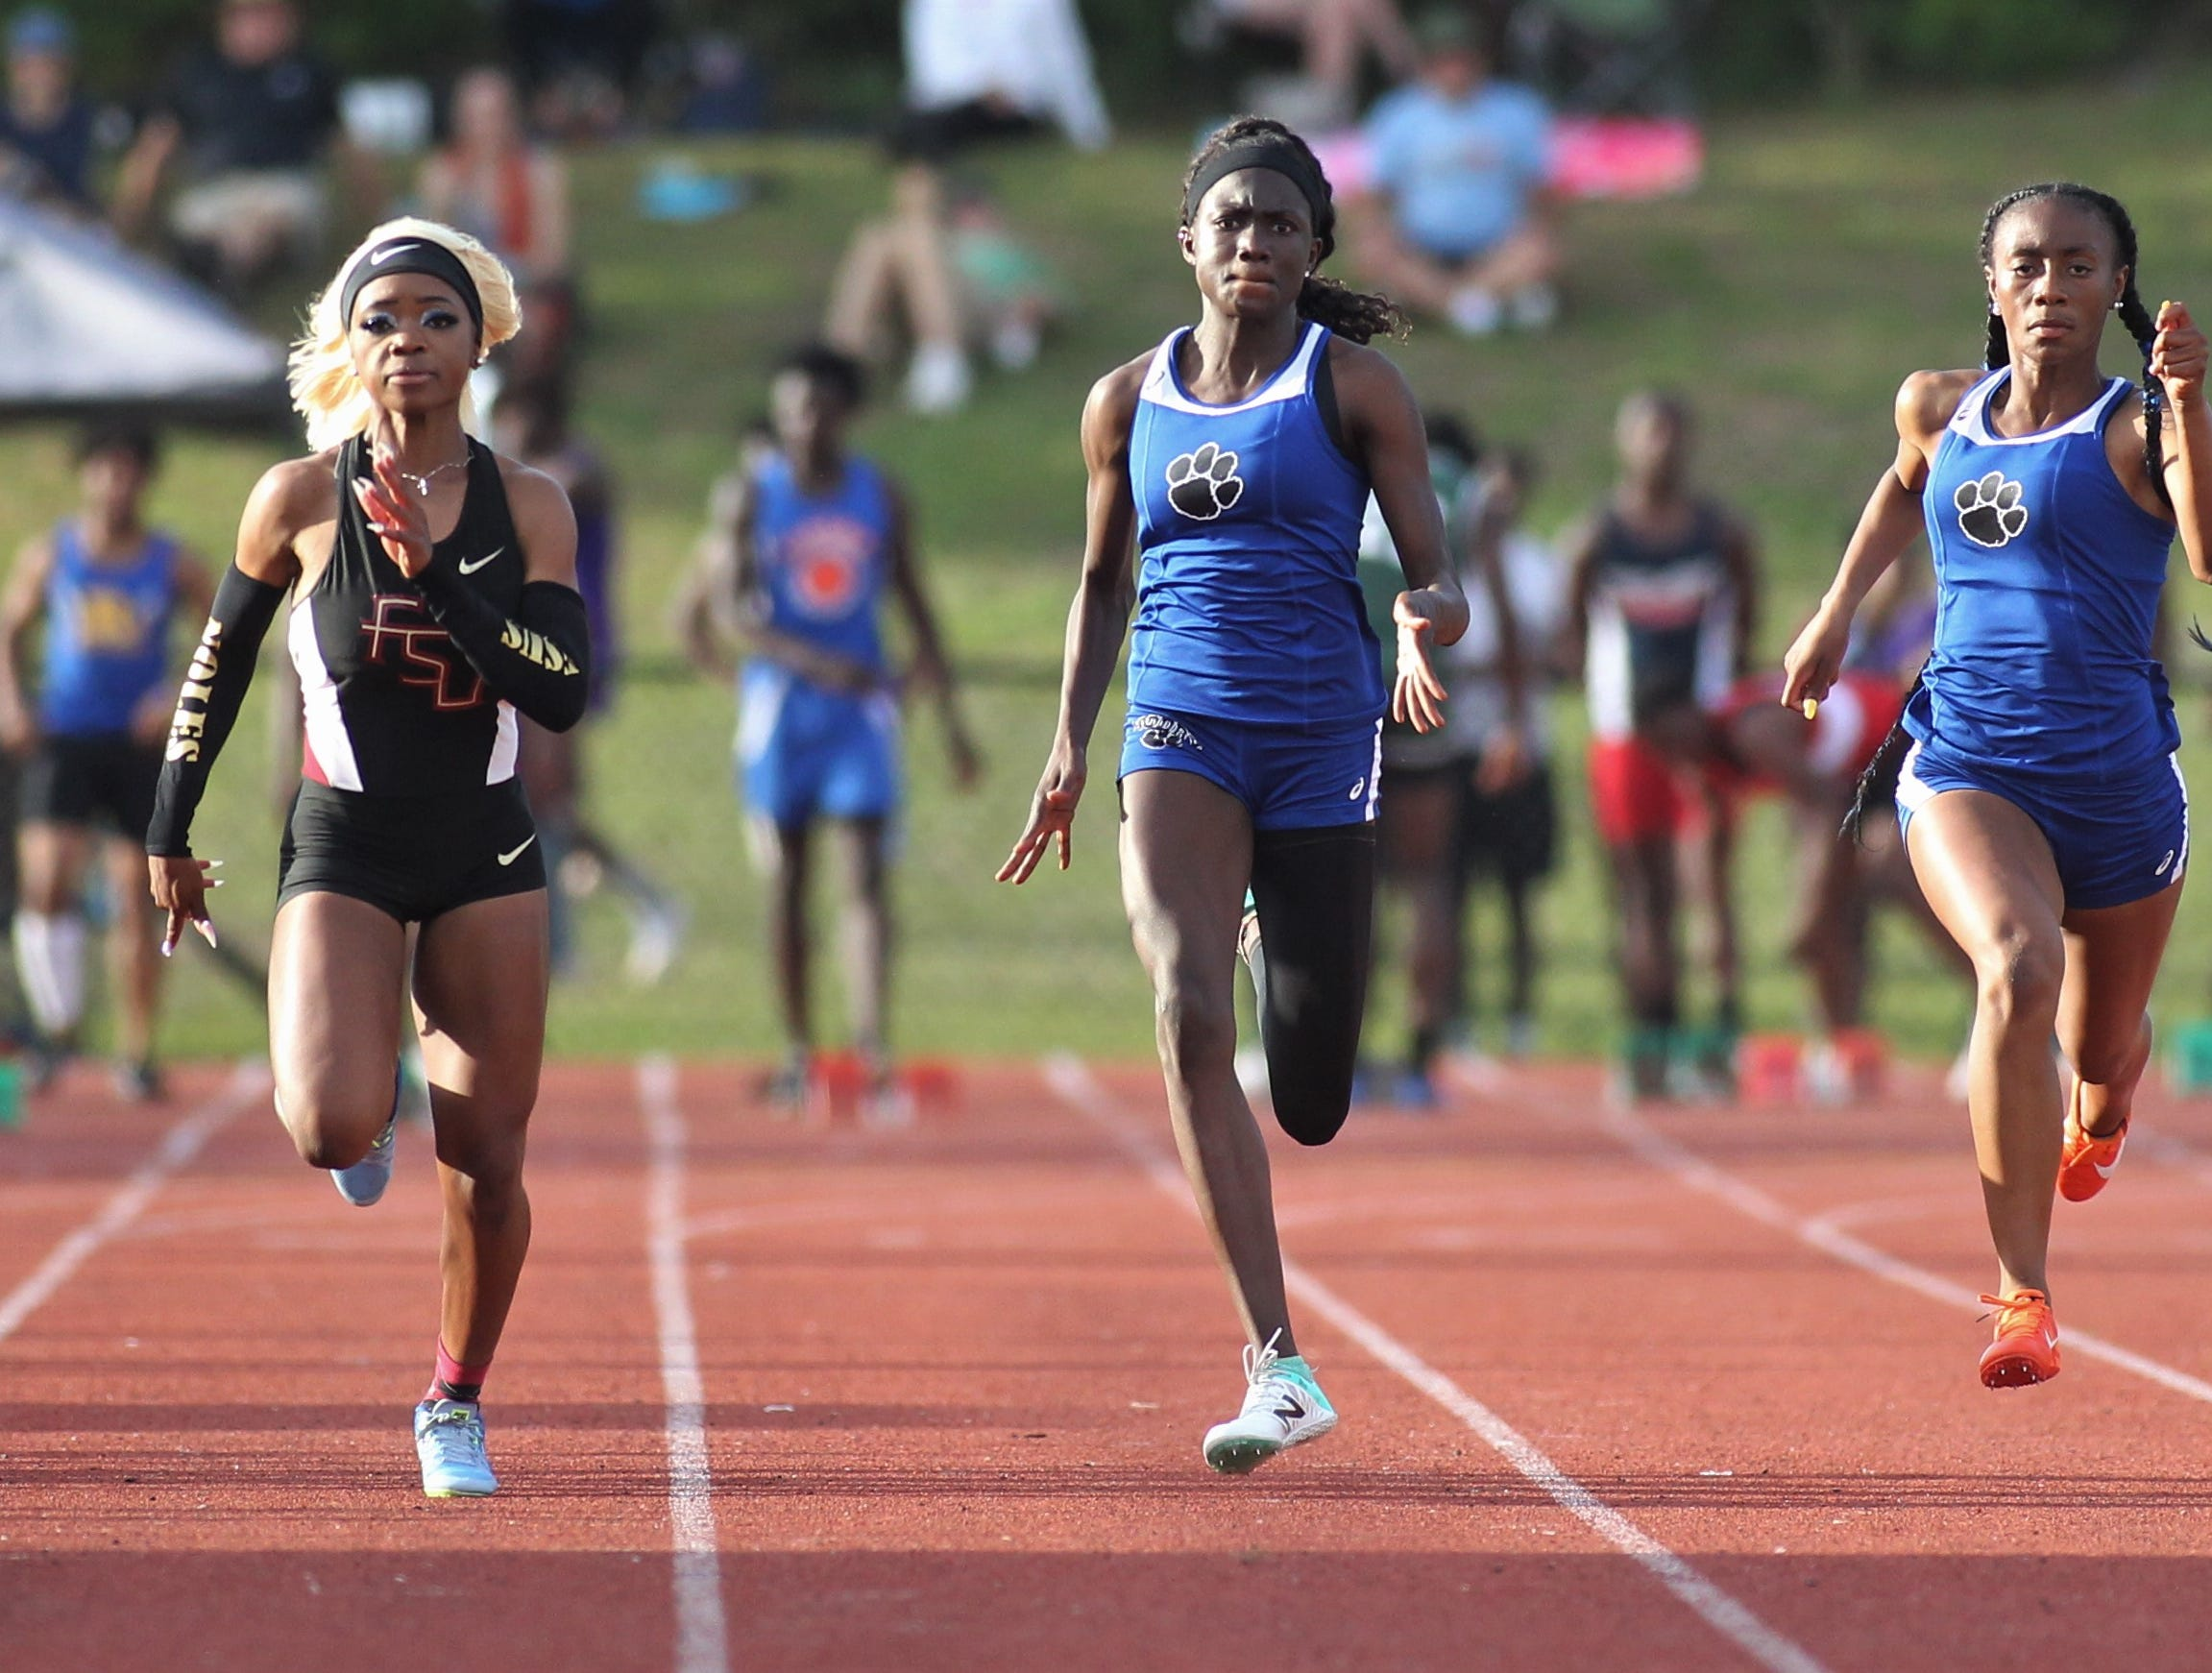 Godby's Naveyh Frost (middle) races next to Florida High junior Jacquell Lewis and Godby junior A'Kyrah O'Banner during District 3-1A and 2-2A track and field meets at Florida High on Saturday, April 13, 2019.